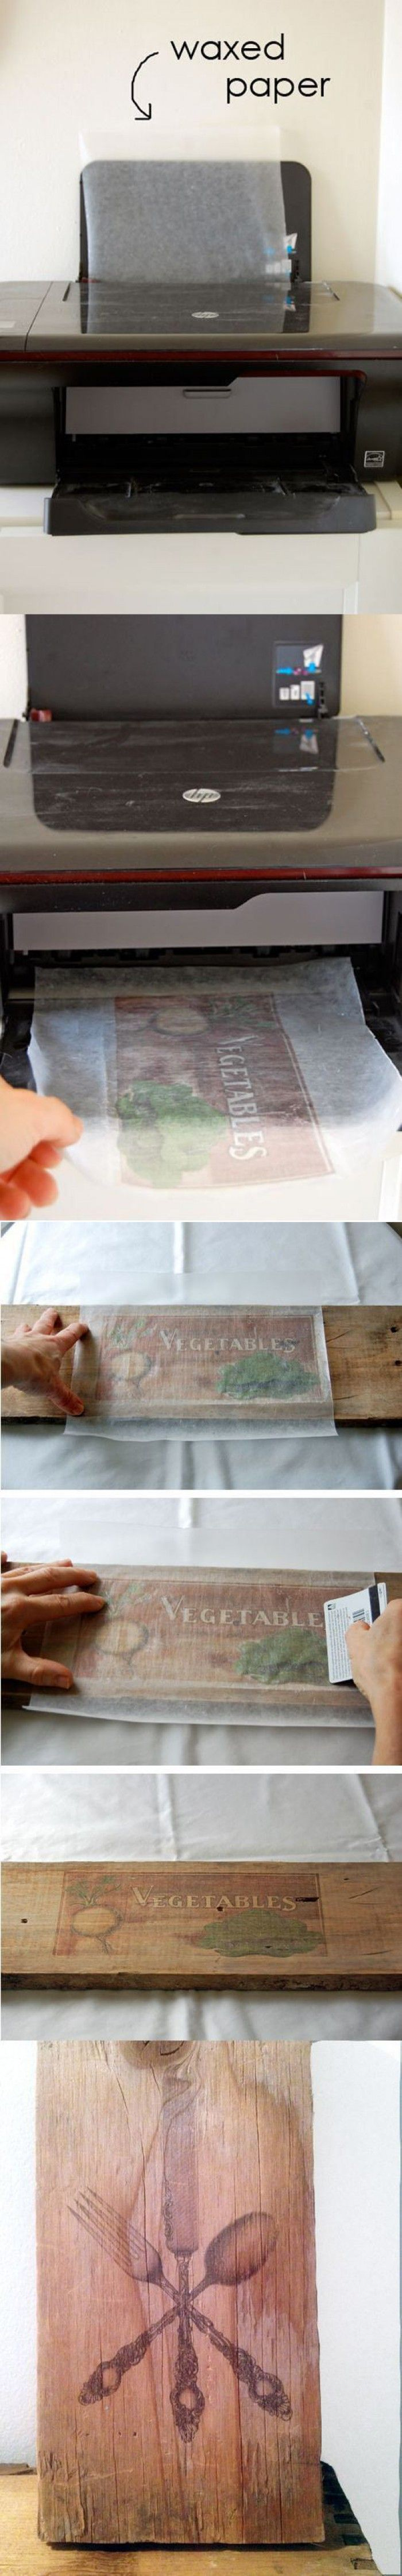 How to Print Pictures on Wood Waxed Paper Transfer - bakpapier in de printer afbeelding of tekst afdrukken bakpapier op het hout leggen glad strijken met bijv. bankpas en klaar!!!!!!!!!!!!!!!!!!!!!!!!!!!!!!!!!!!!!!!